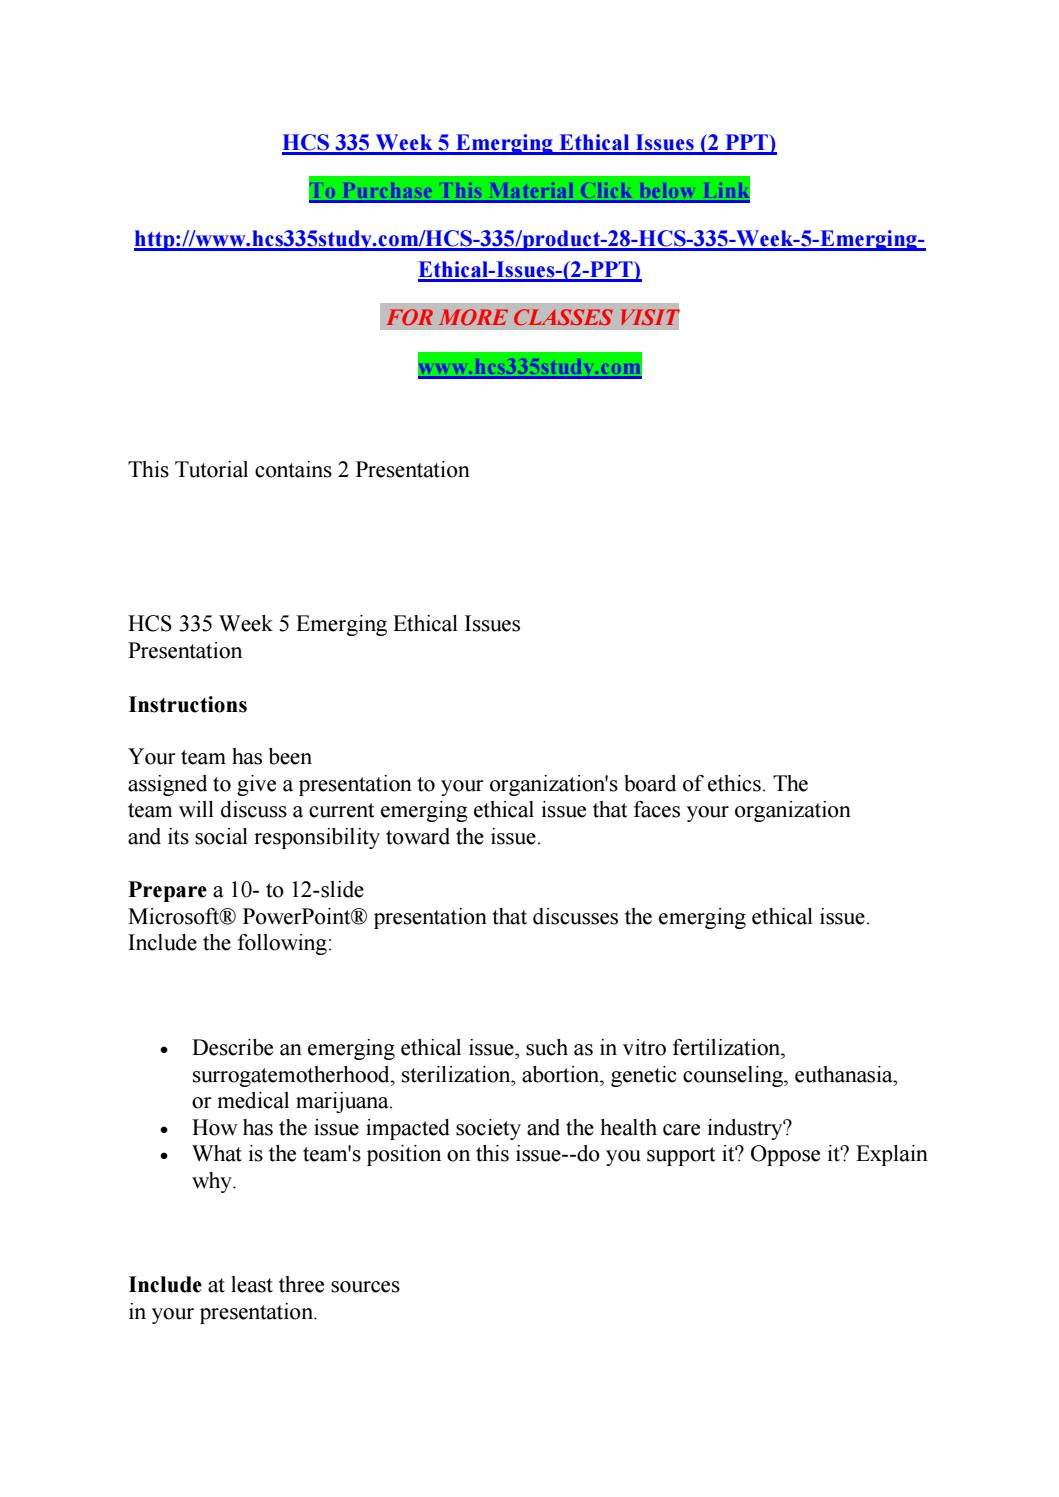 Hcs 335 week 5 emerging ethical issues (2 ppt) by hjk - issuu